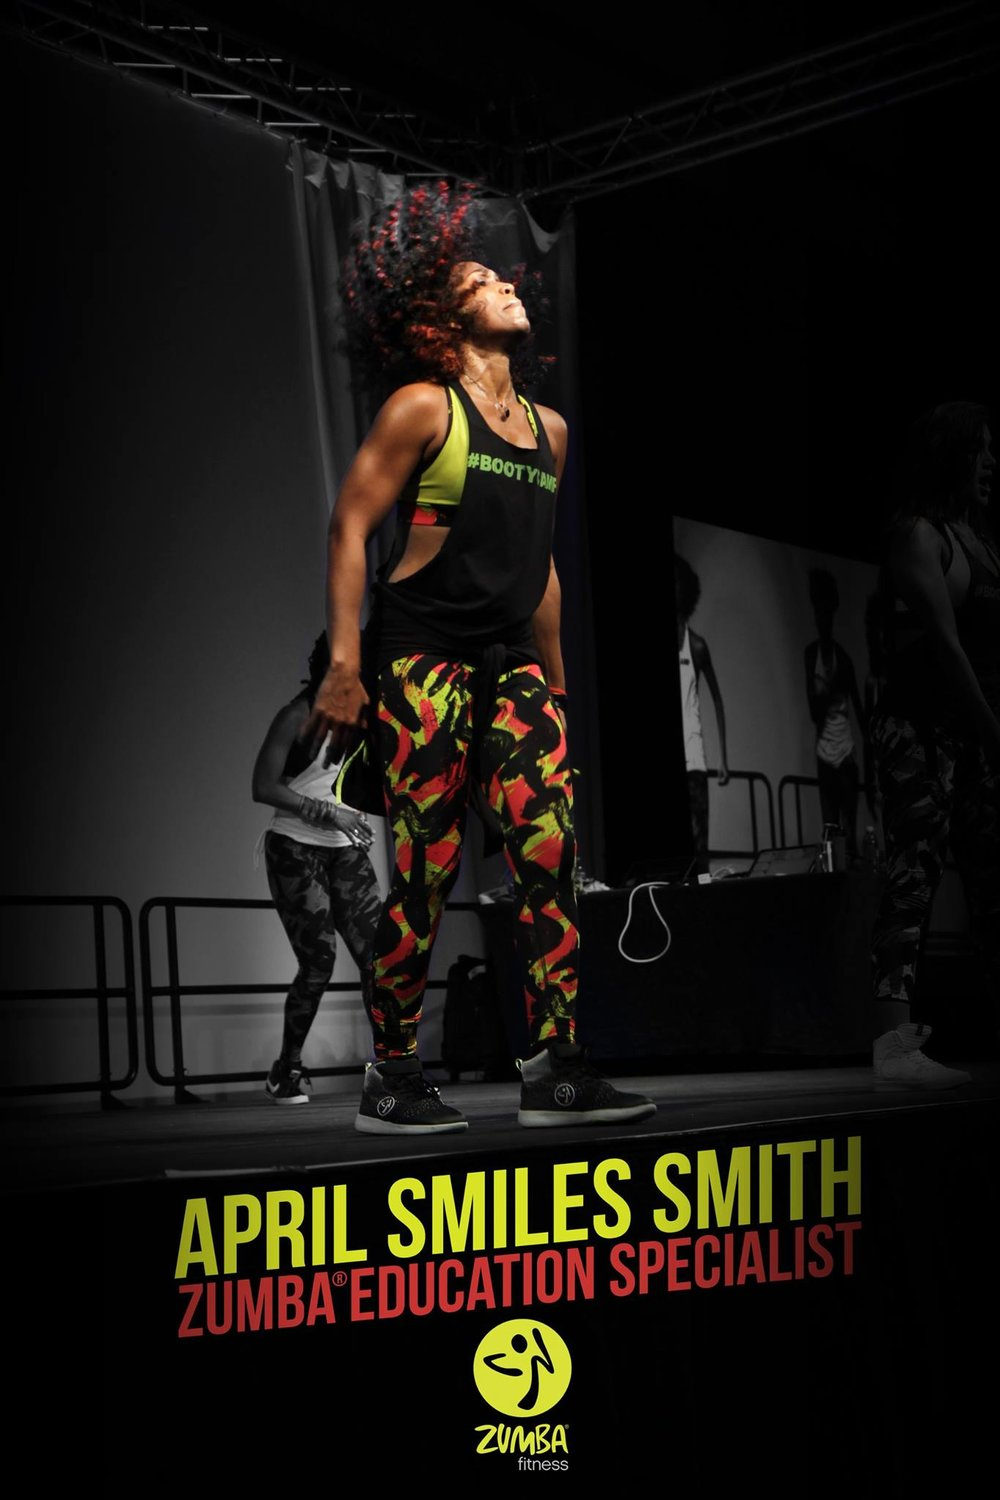 April Smiles Smith PIC.jpg